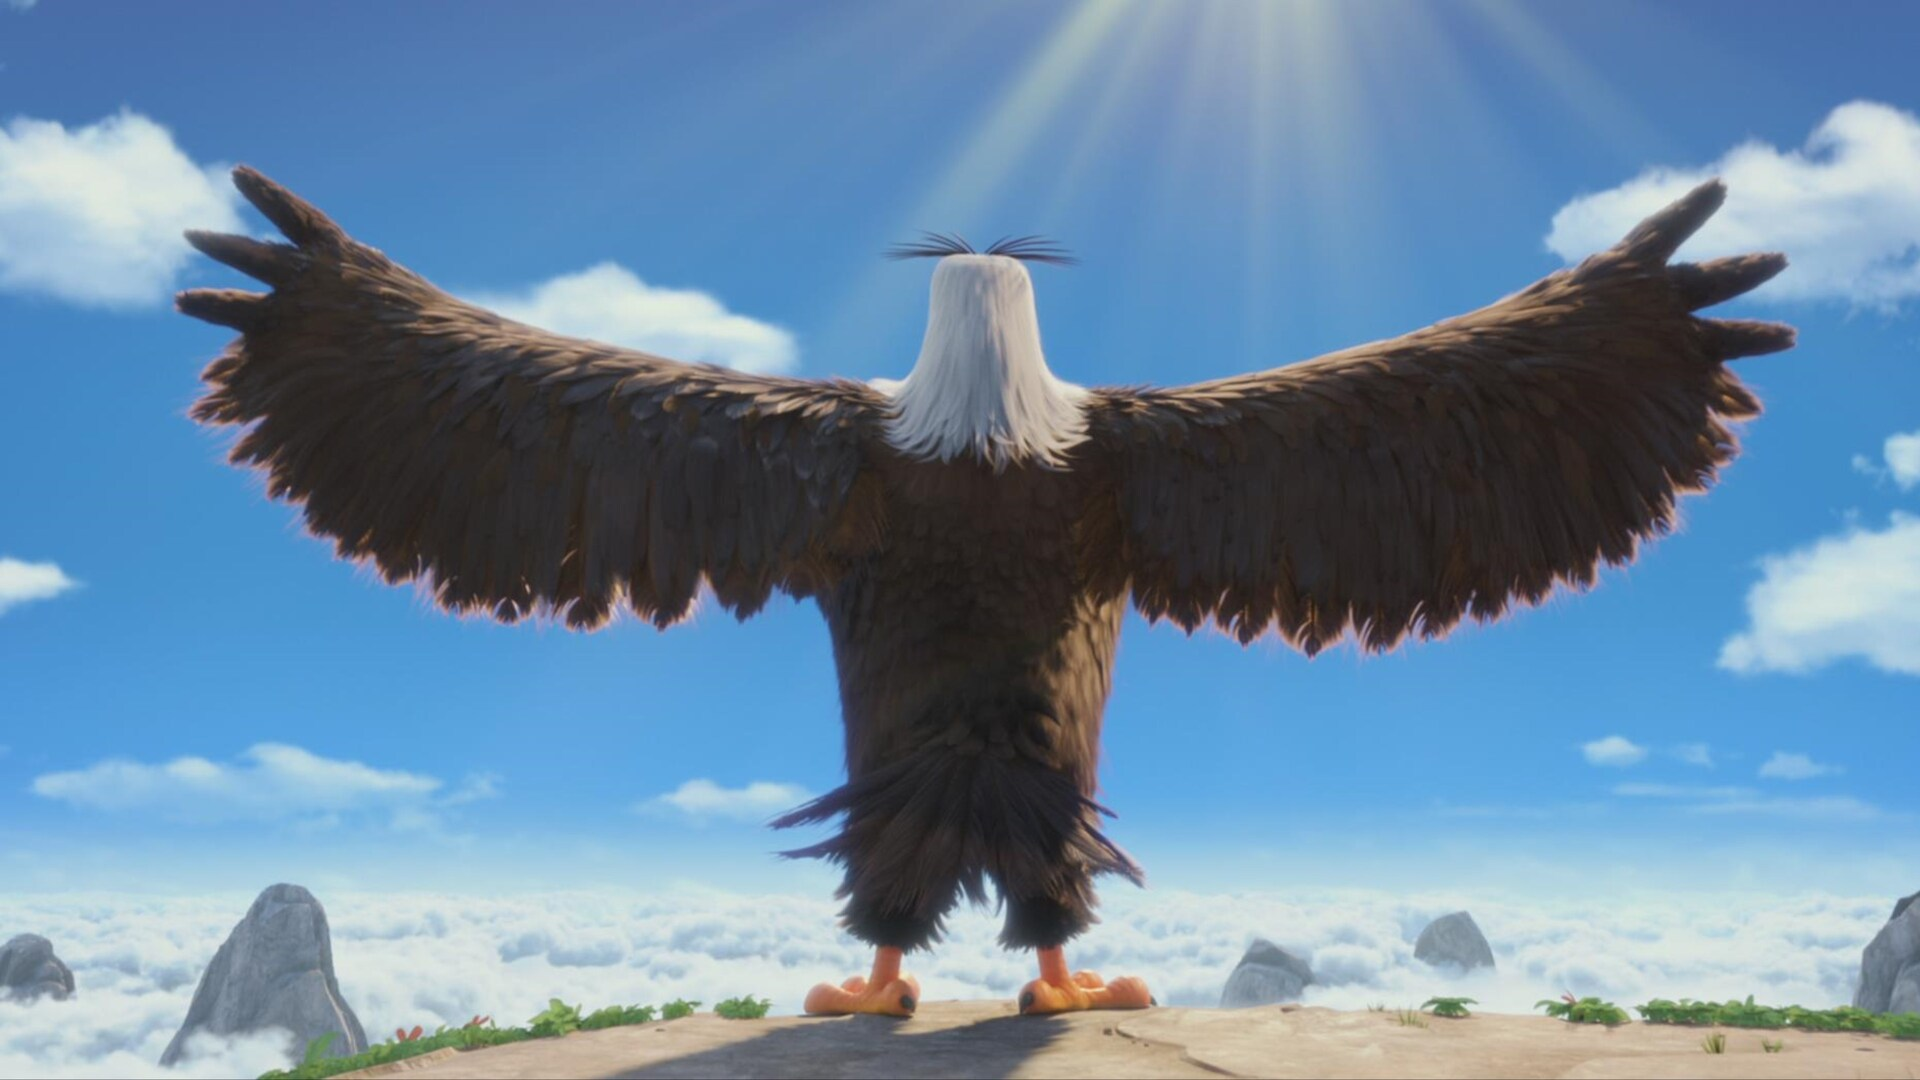 1920x1080 Eagle Angry Birds Movie Laptop Full HD 1080P HD ...